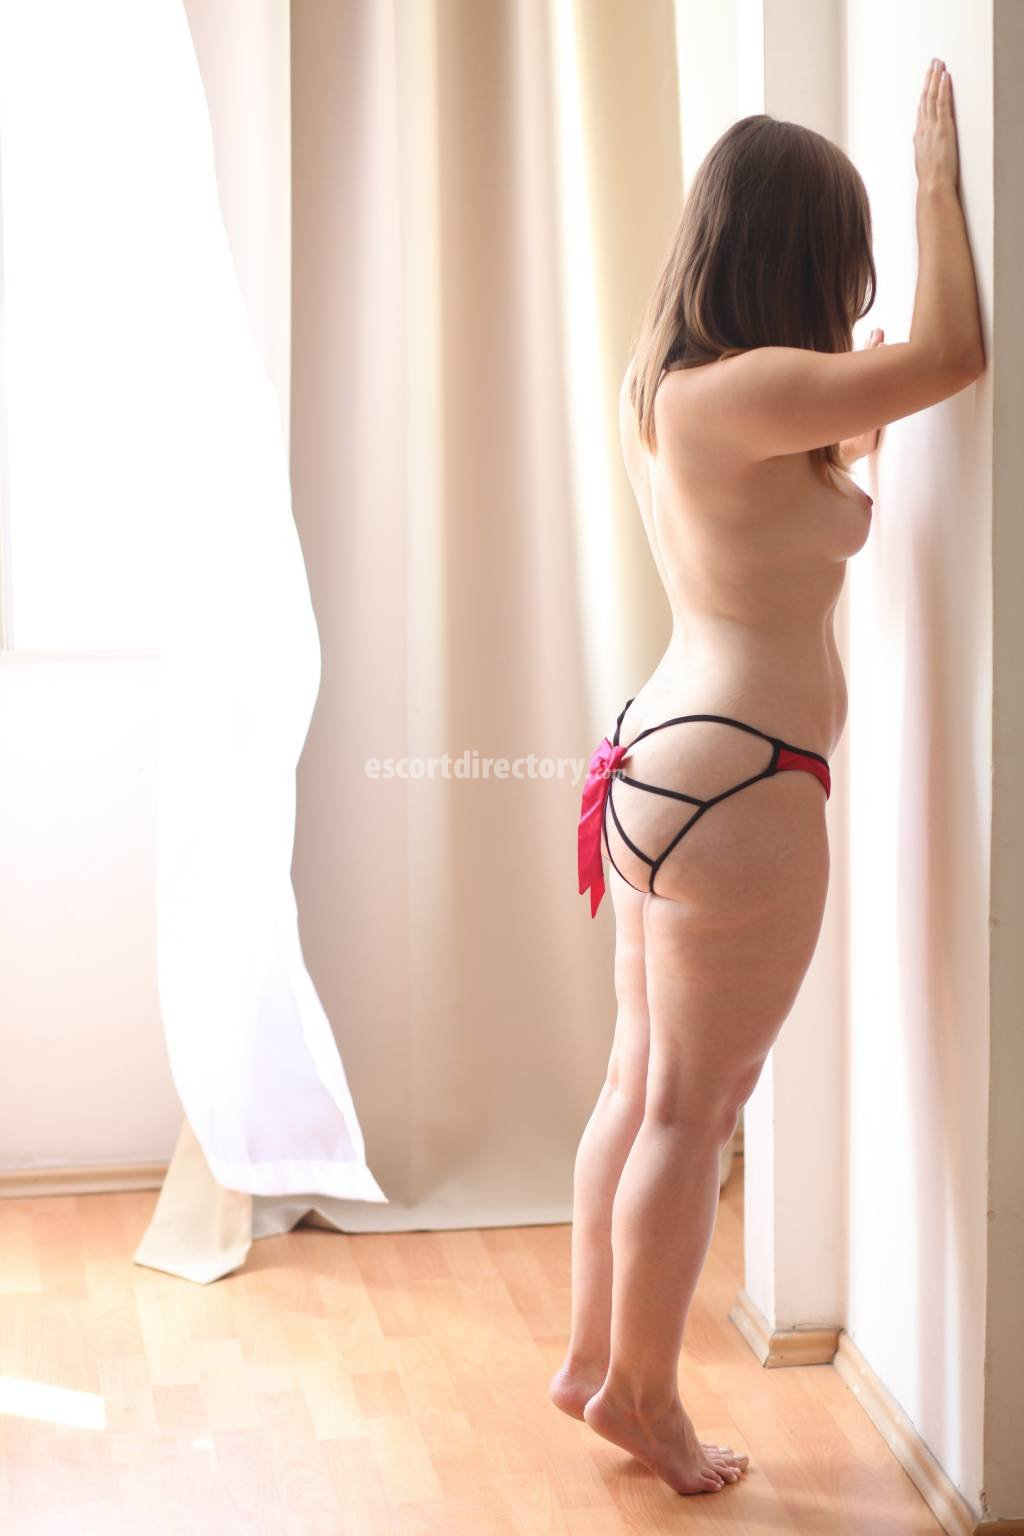 free chat no registration bdsm escort prague